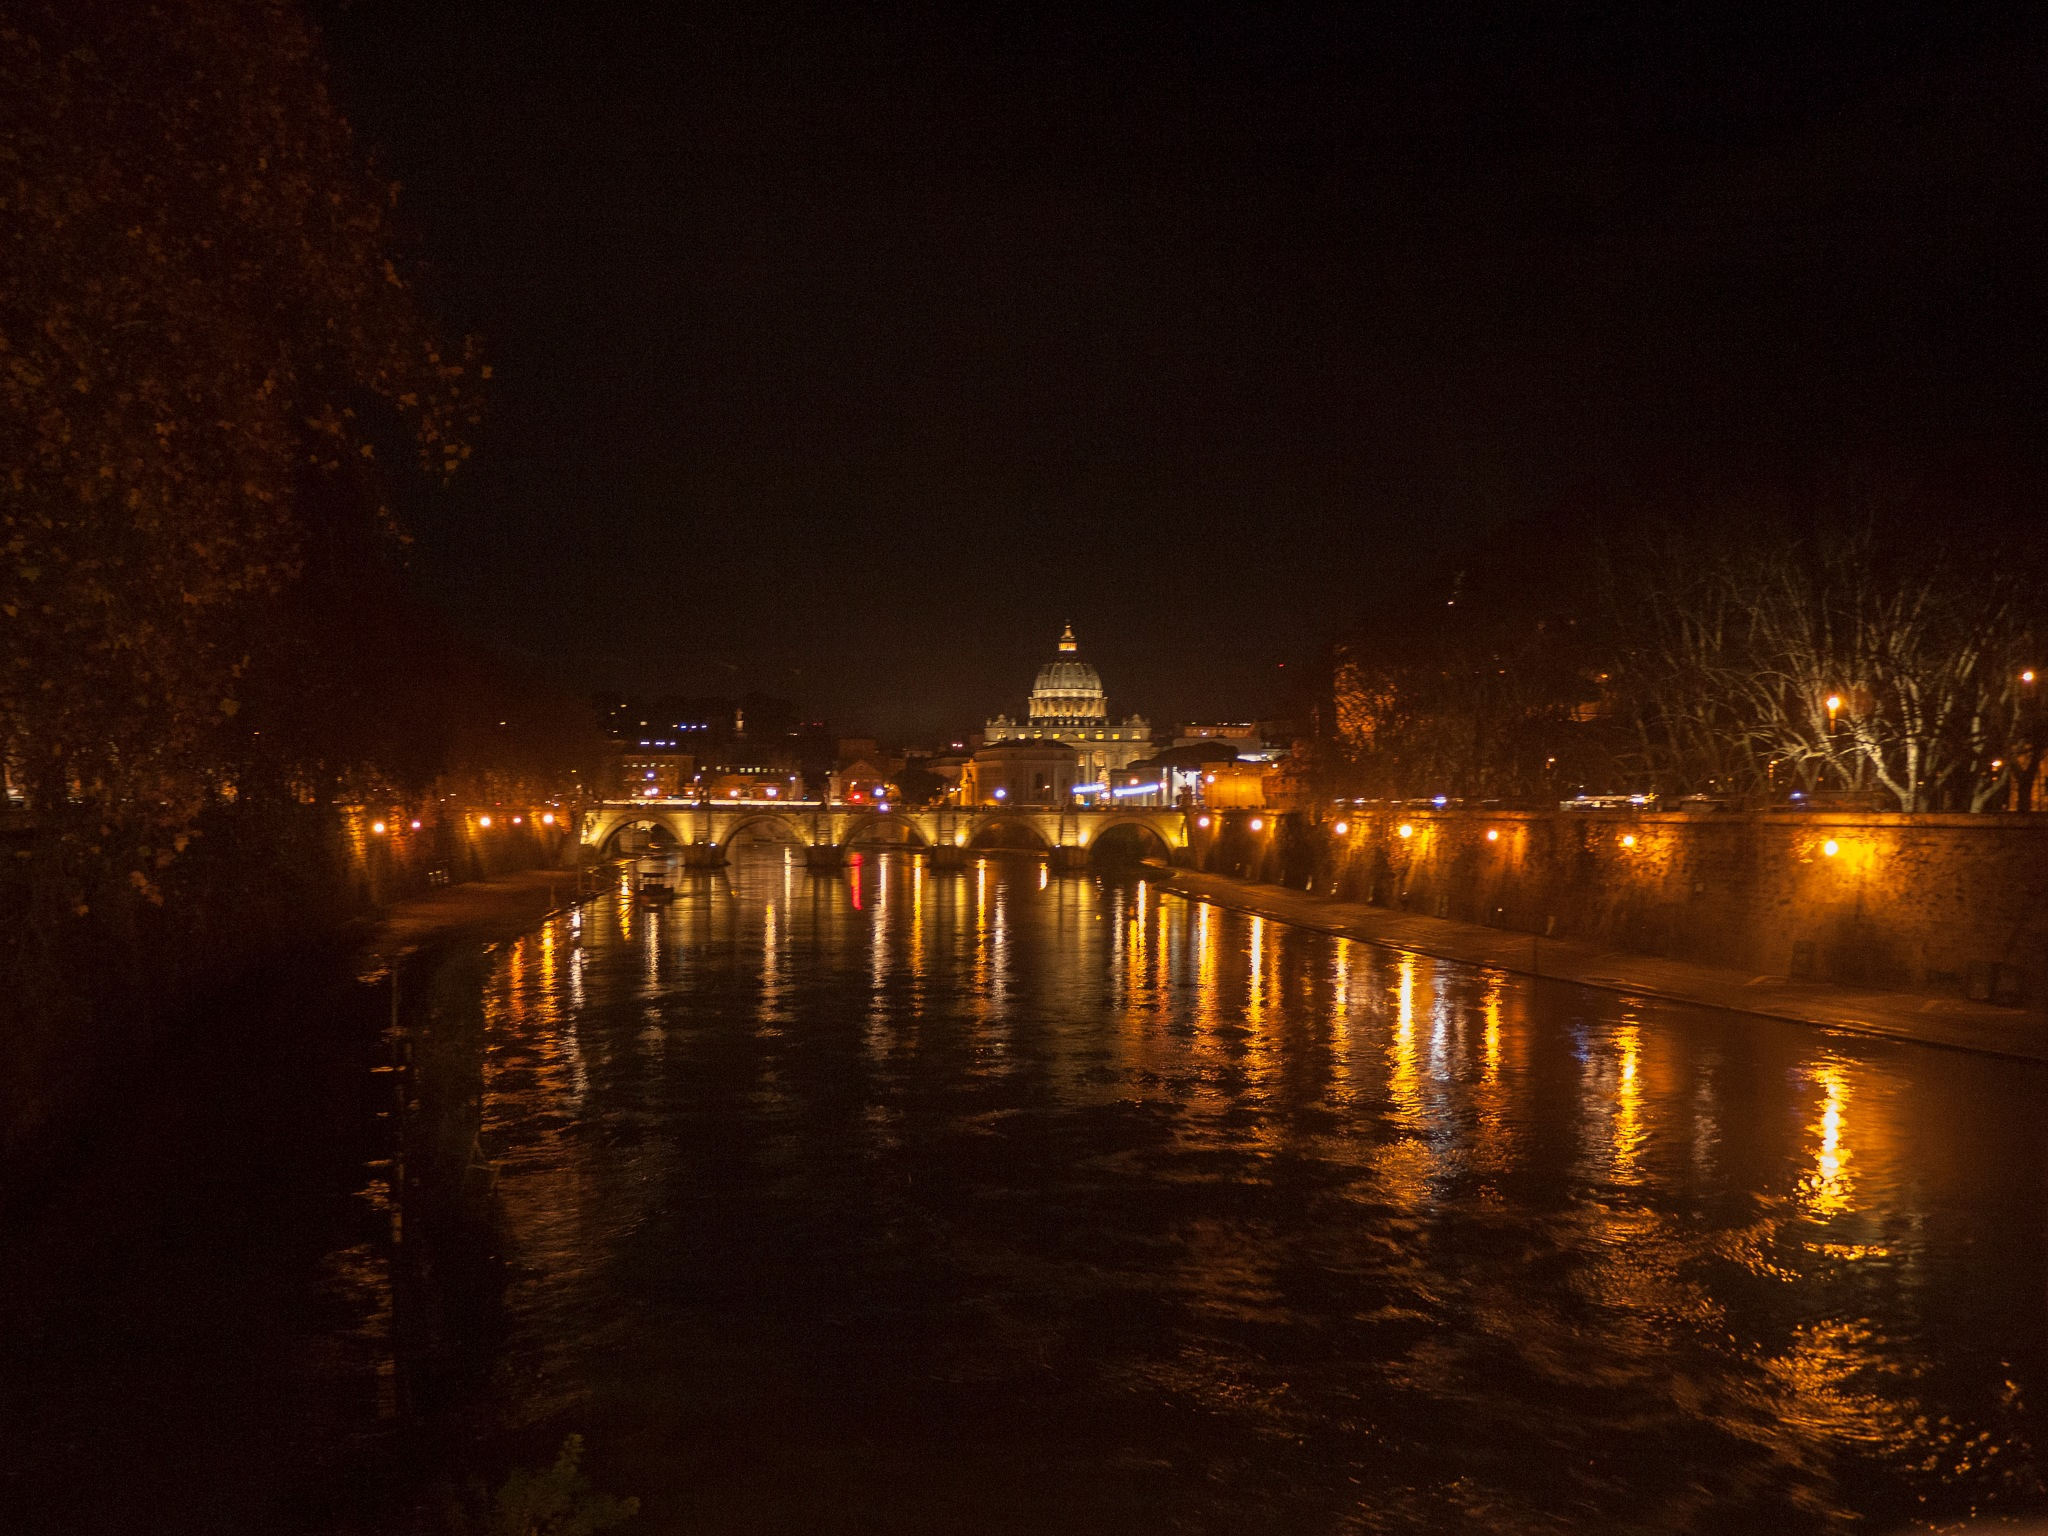 Rome at Night by dave clarke